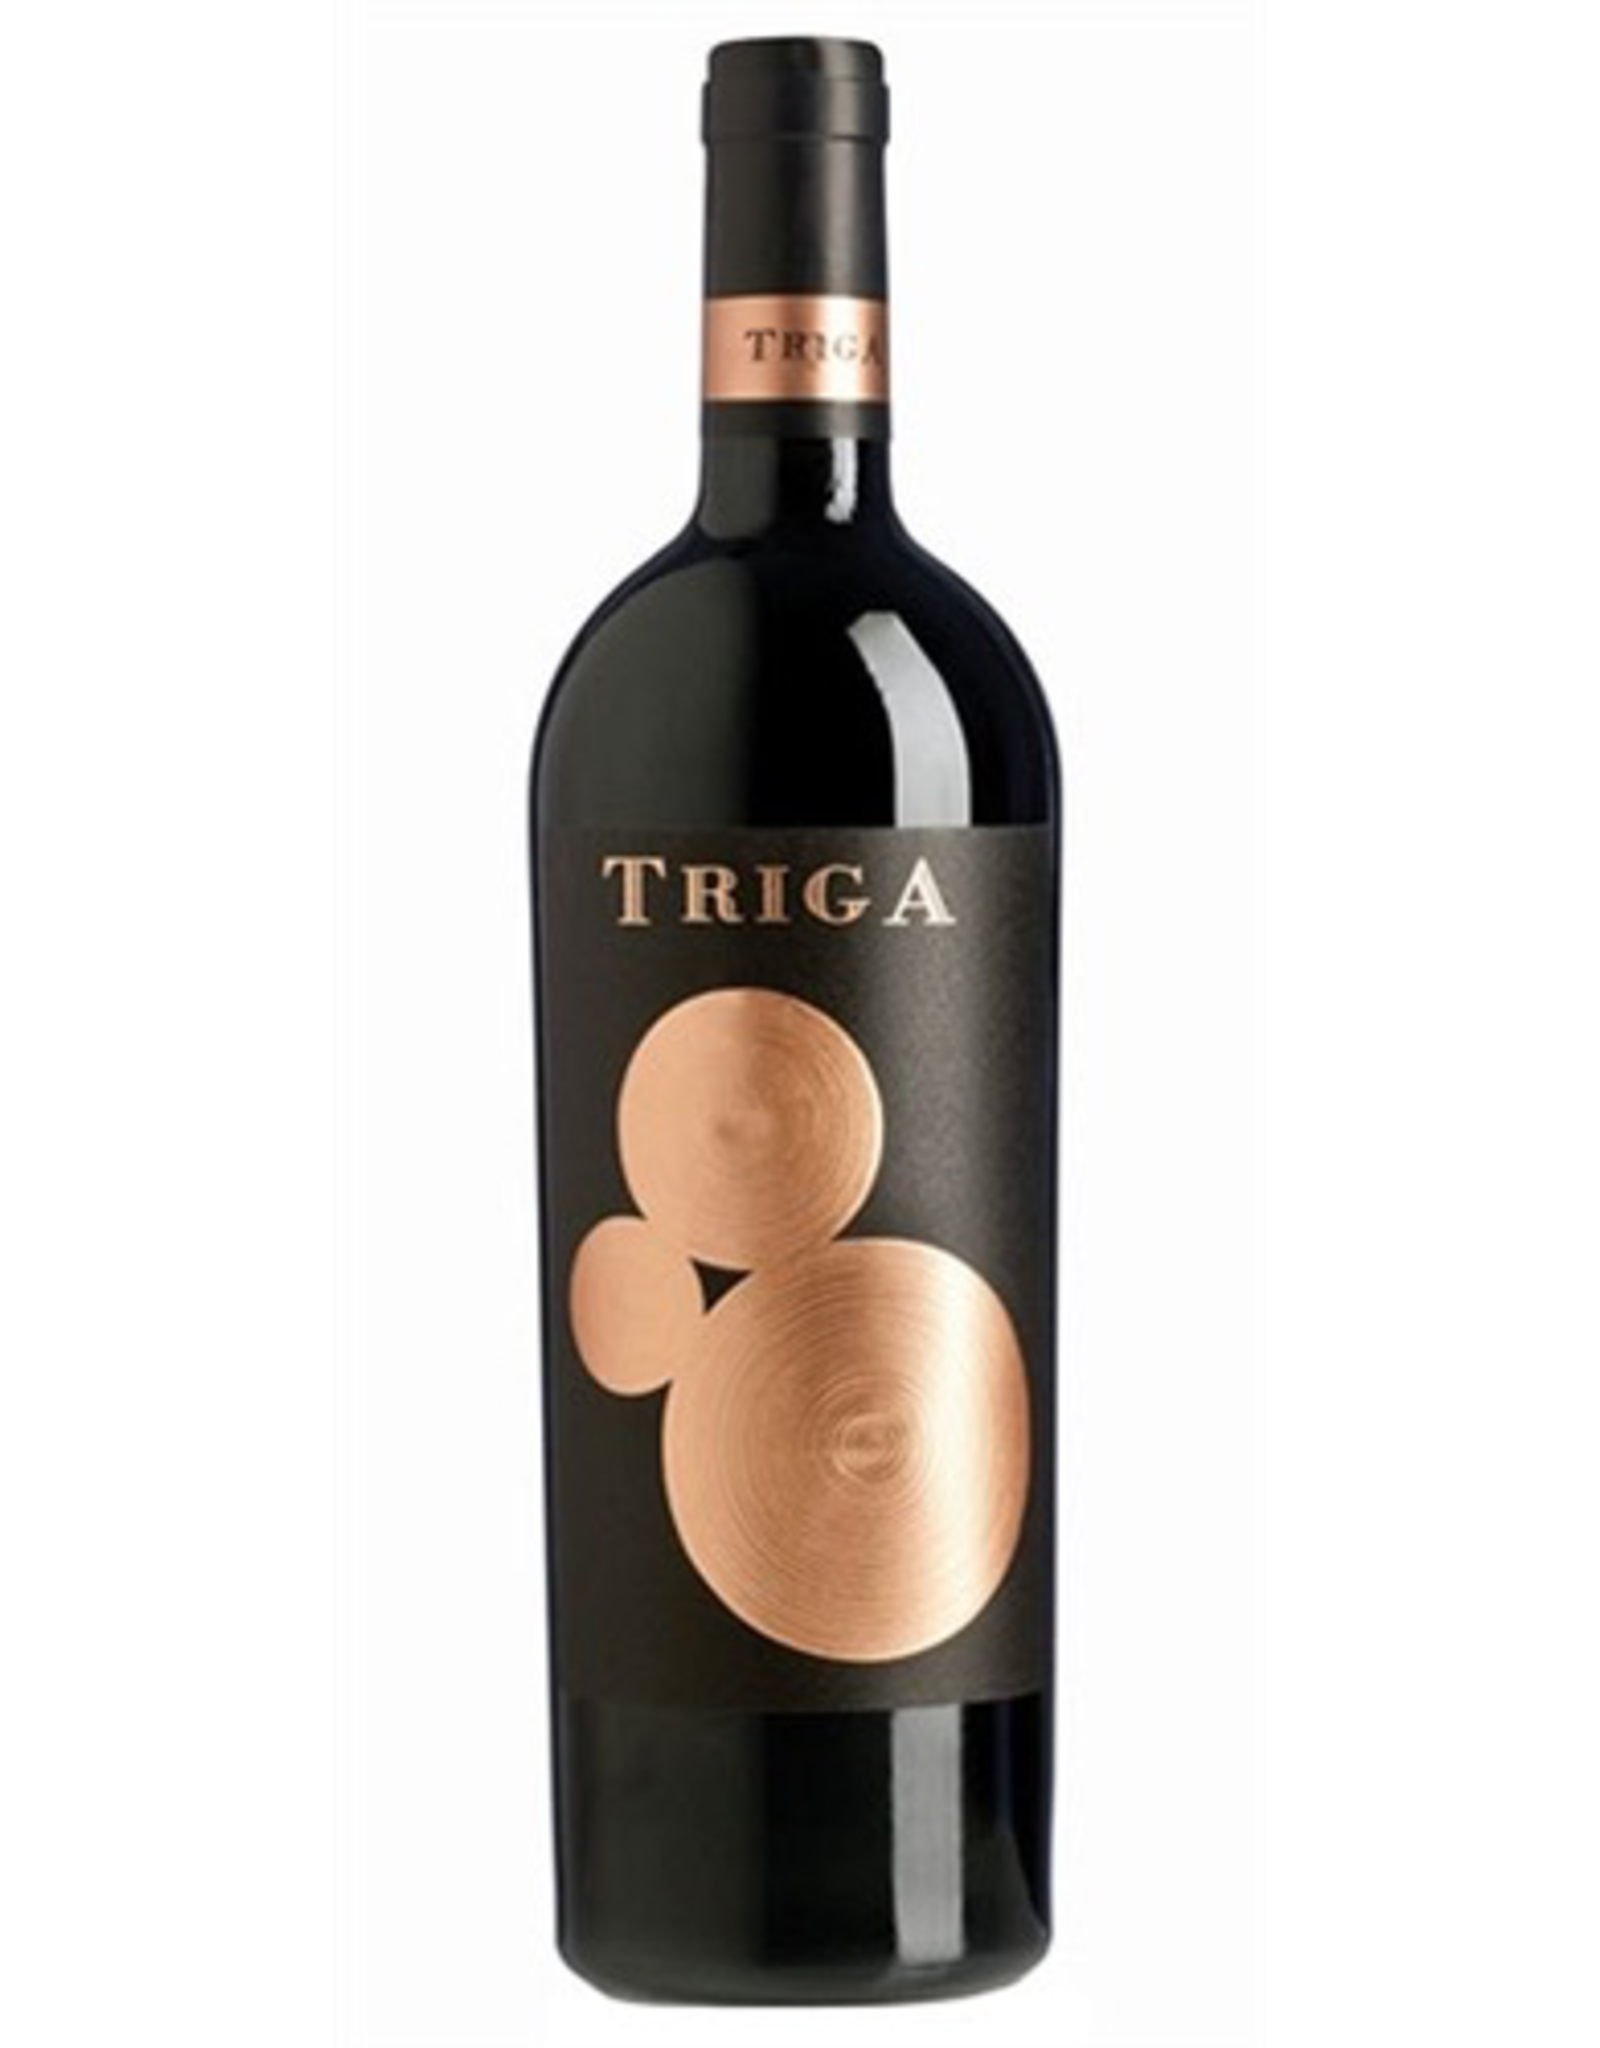 Red Wine 2014, Triga by Jorge Ordonez, Red Blend, Alicante, South Central Coast, Spain, 16% Alc, CT92